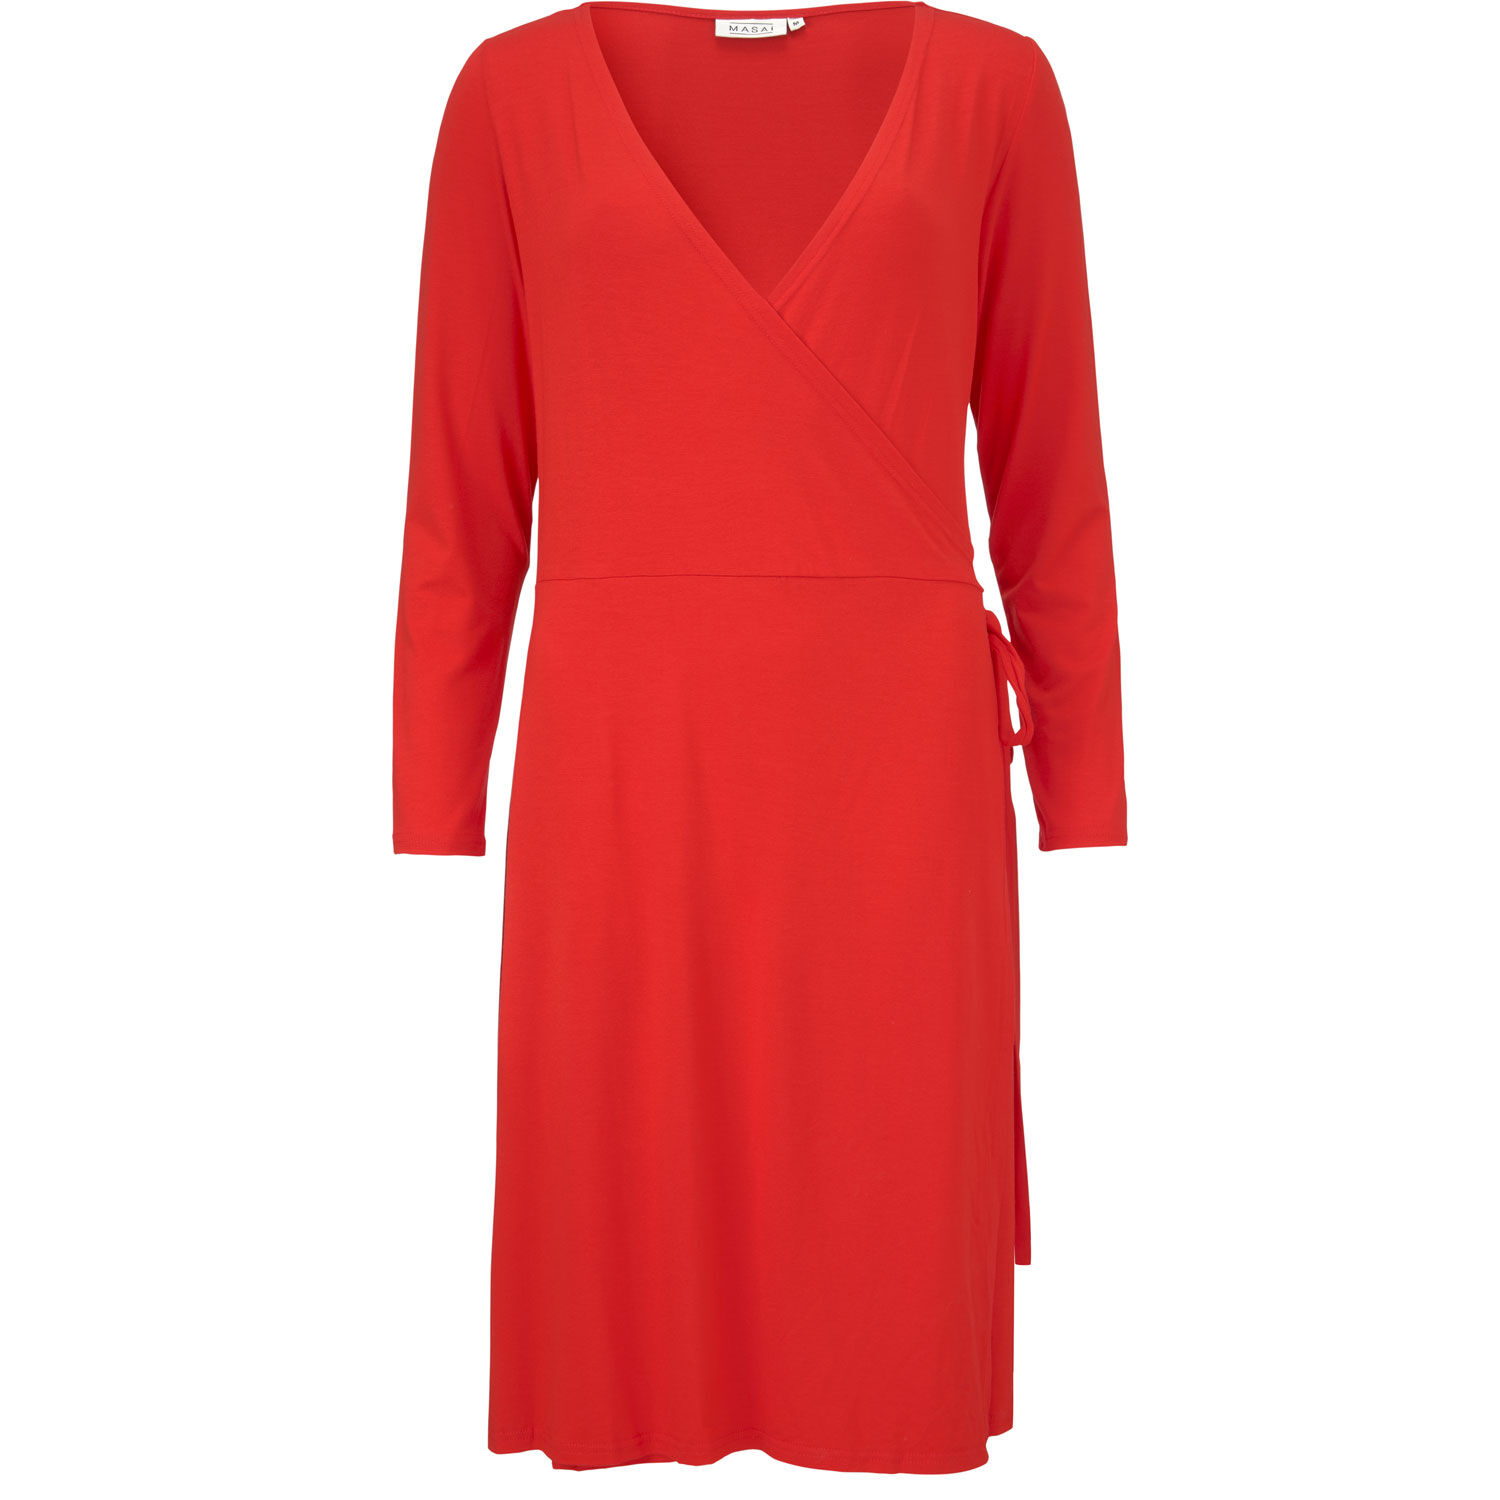 And Top Gorgeous Shirt Dress Jersey In Styles Soft T f1q4Adgf